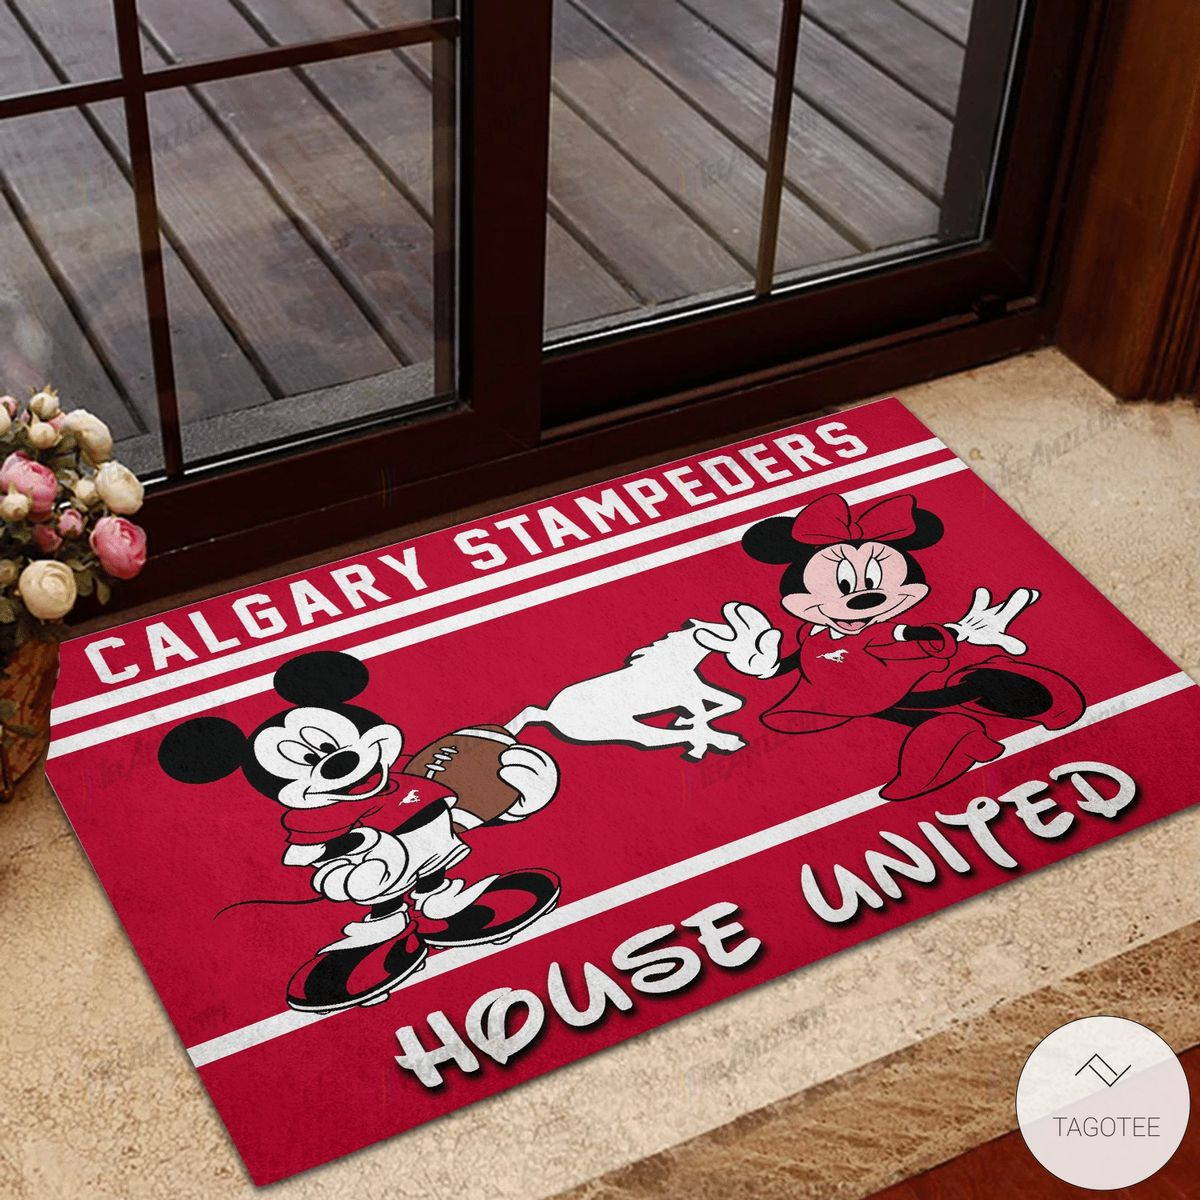 Calgary Stampeders House United Mickey Mouse And Minnie Mouse Doormat